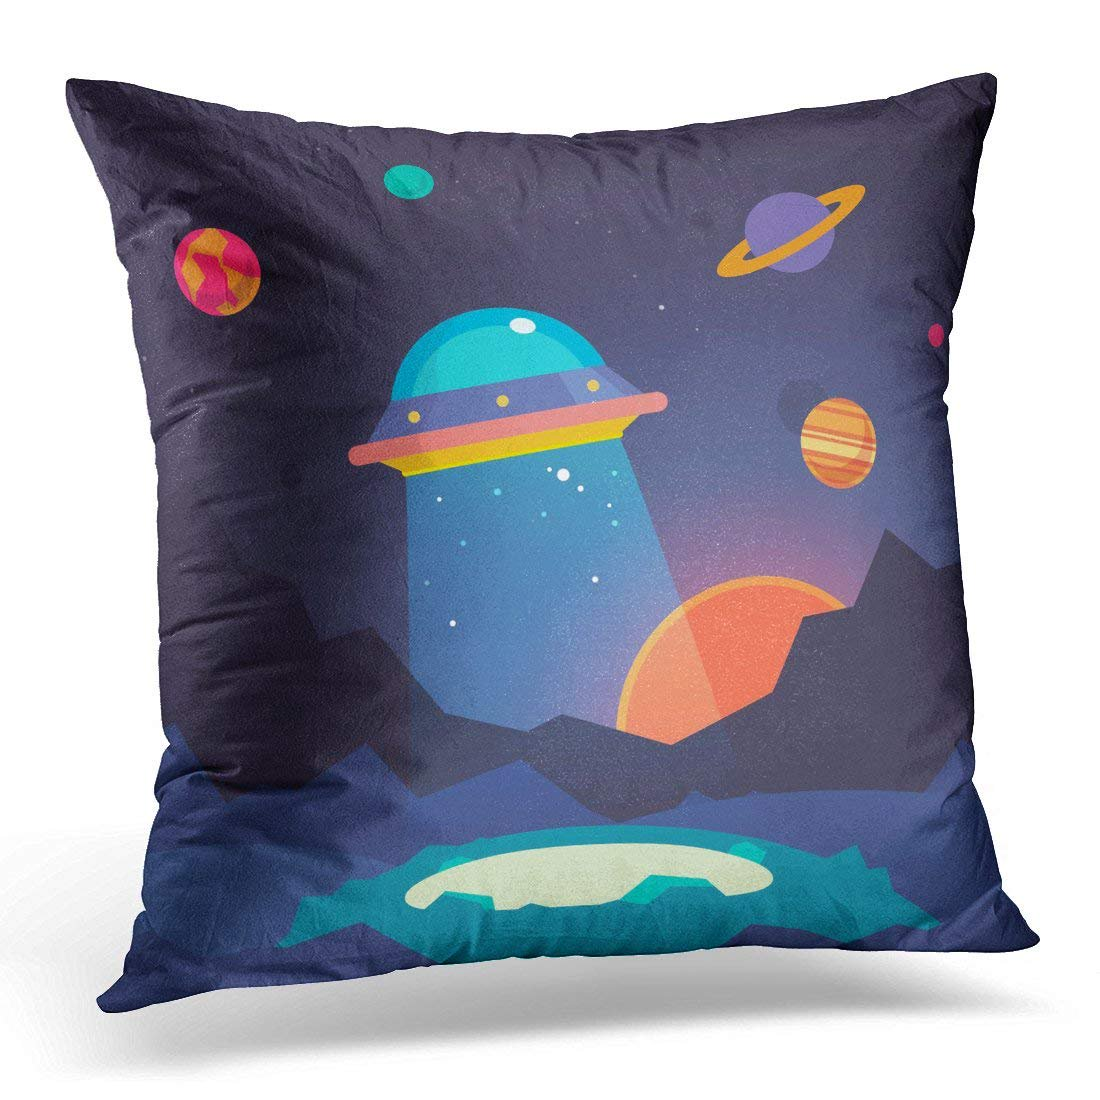 Erehome Space Night Alien World Landscape And Ufo Spaceship With Beam Of Light On Starry Sky Flat Planet Pillow Case Pillow Cover 20x20 Inch Walmart Canada